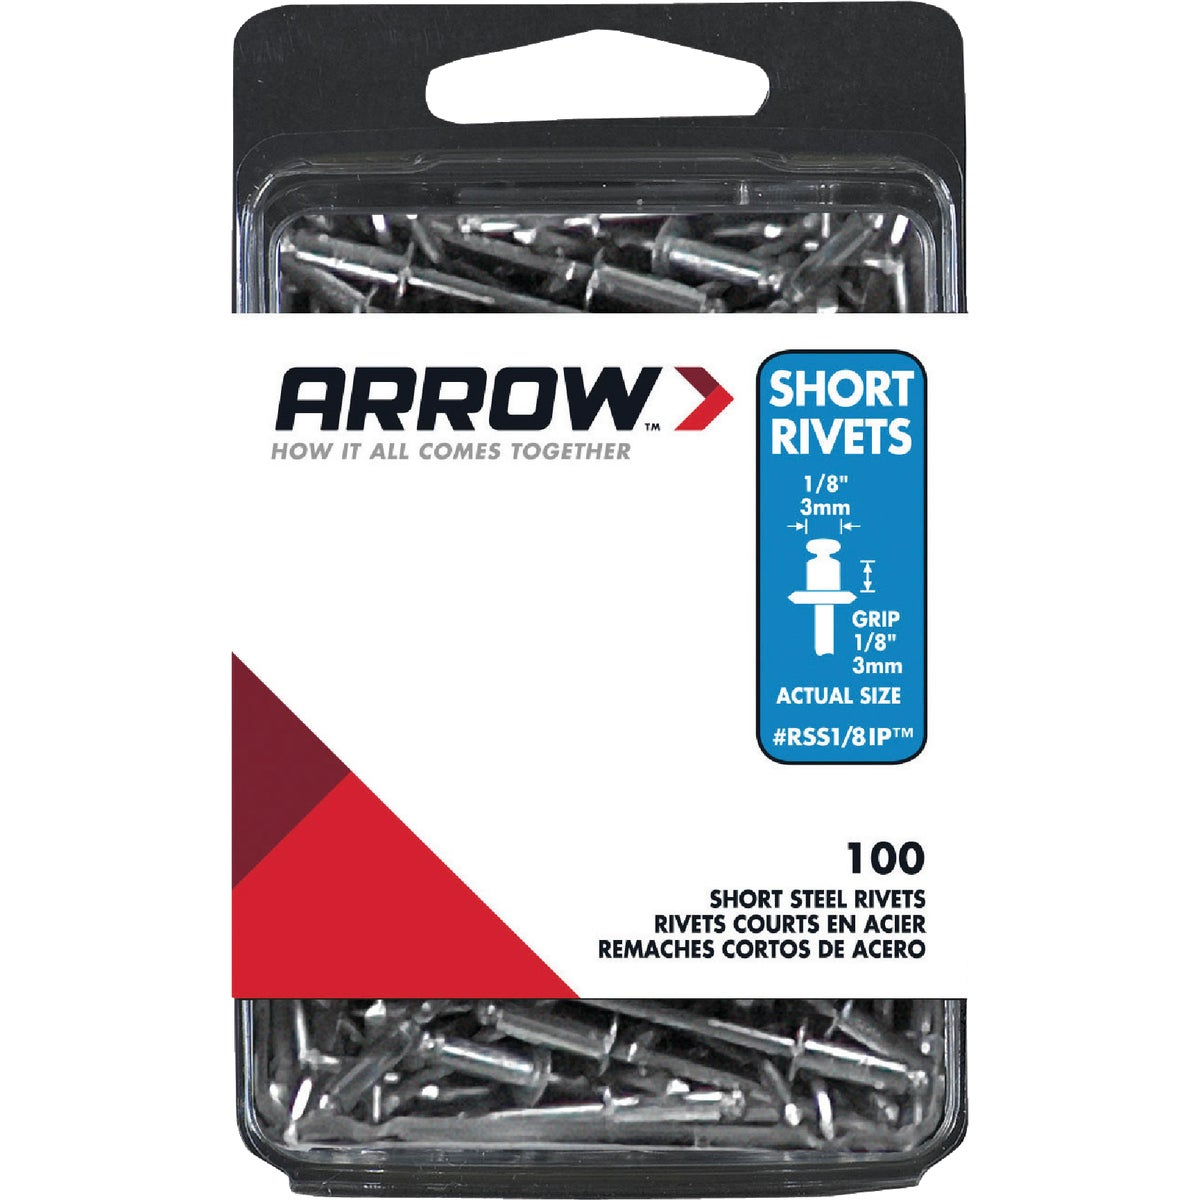 1/8X1/8 STL RIVET - RSS1/8IP by Arrow Fastener Co